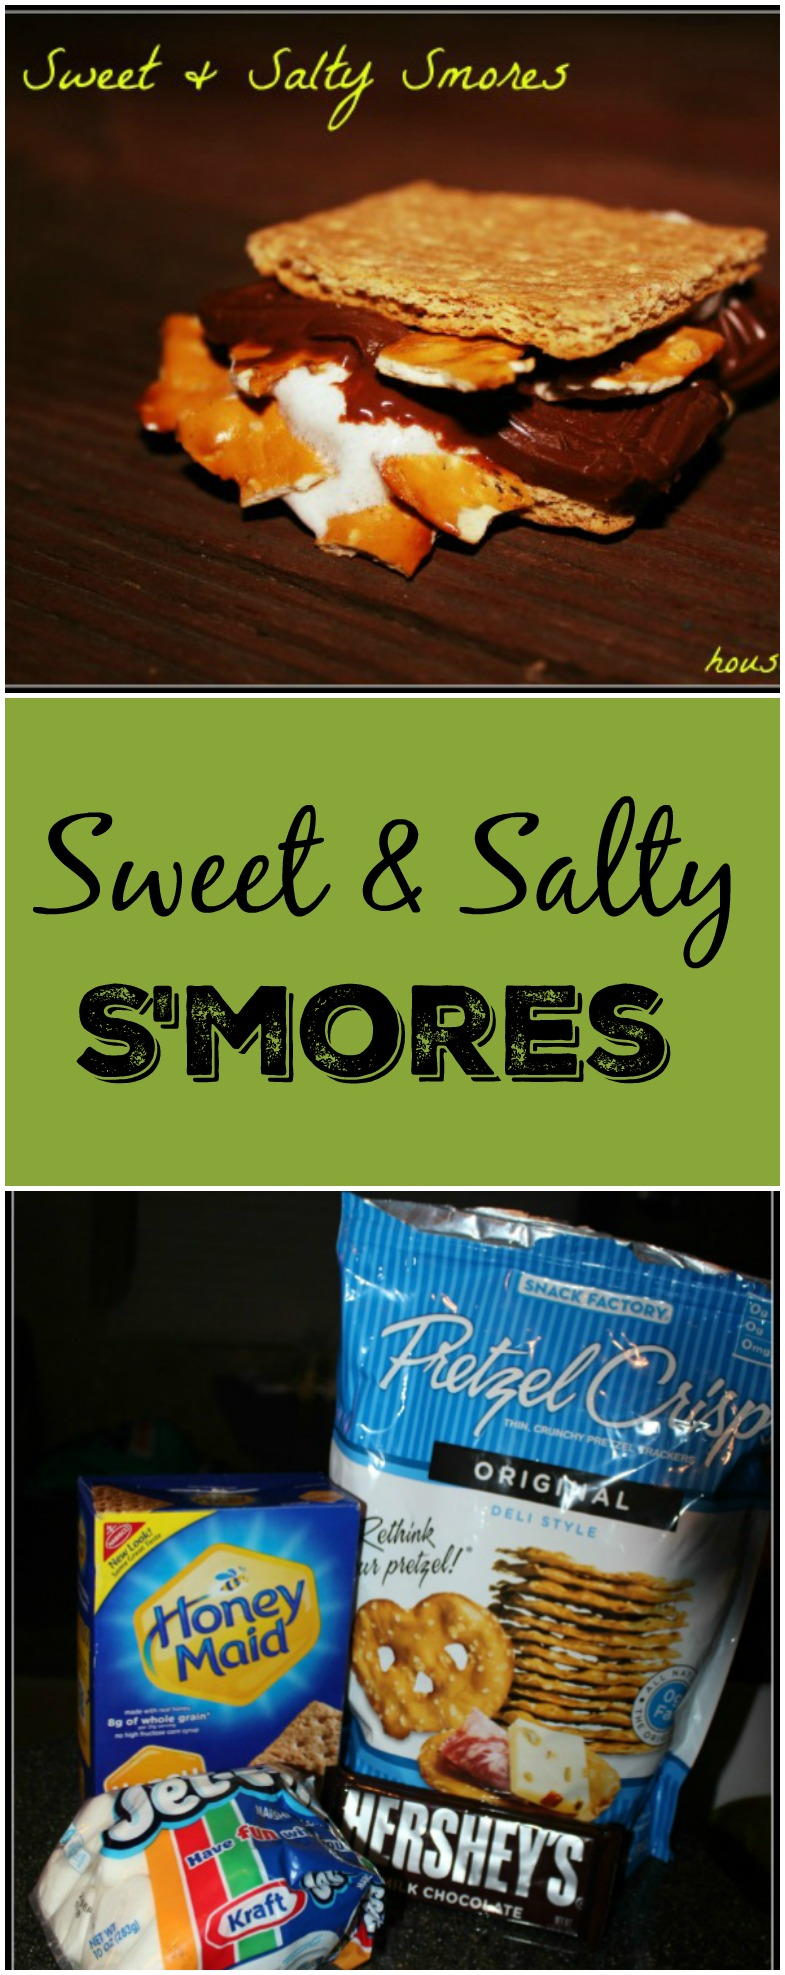 Sweet & Salty Smores Perfect for Adding a Pazazz to the Plain Smores